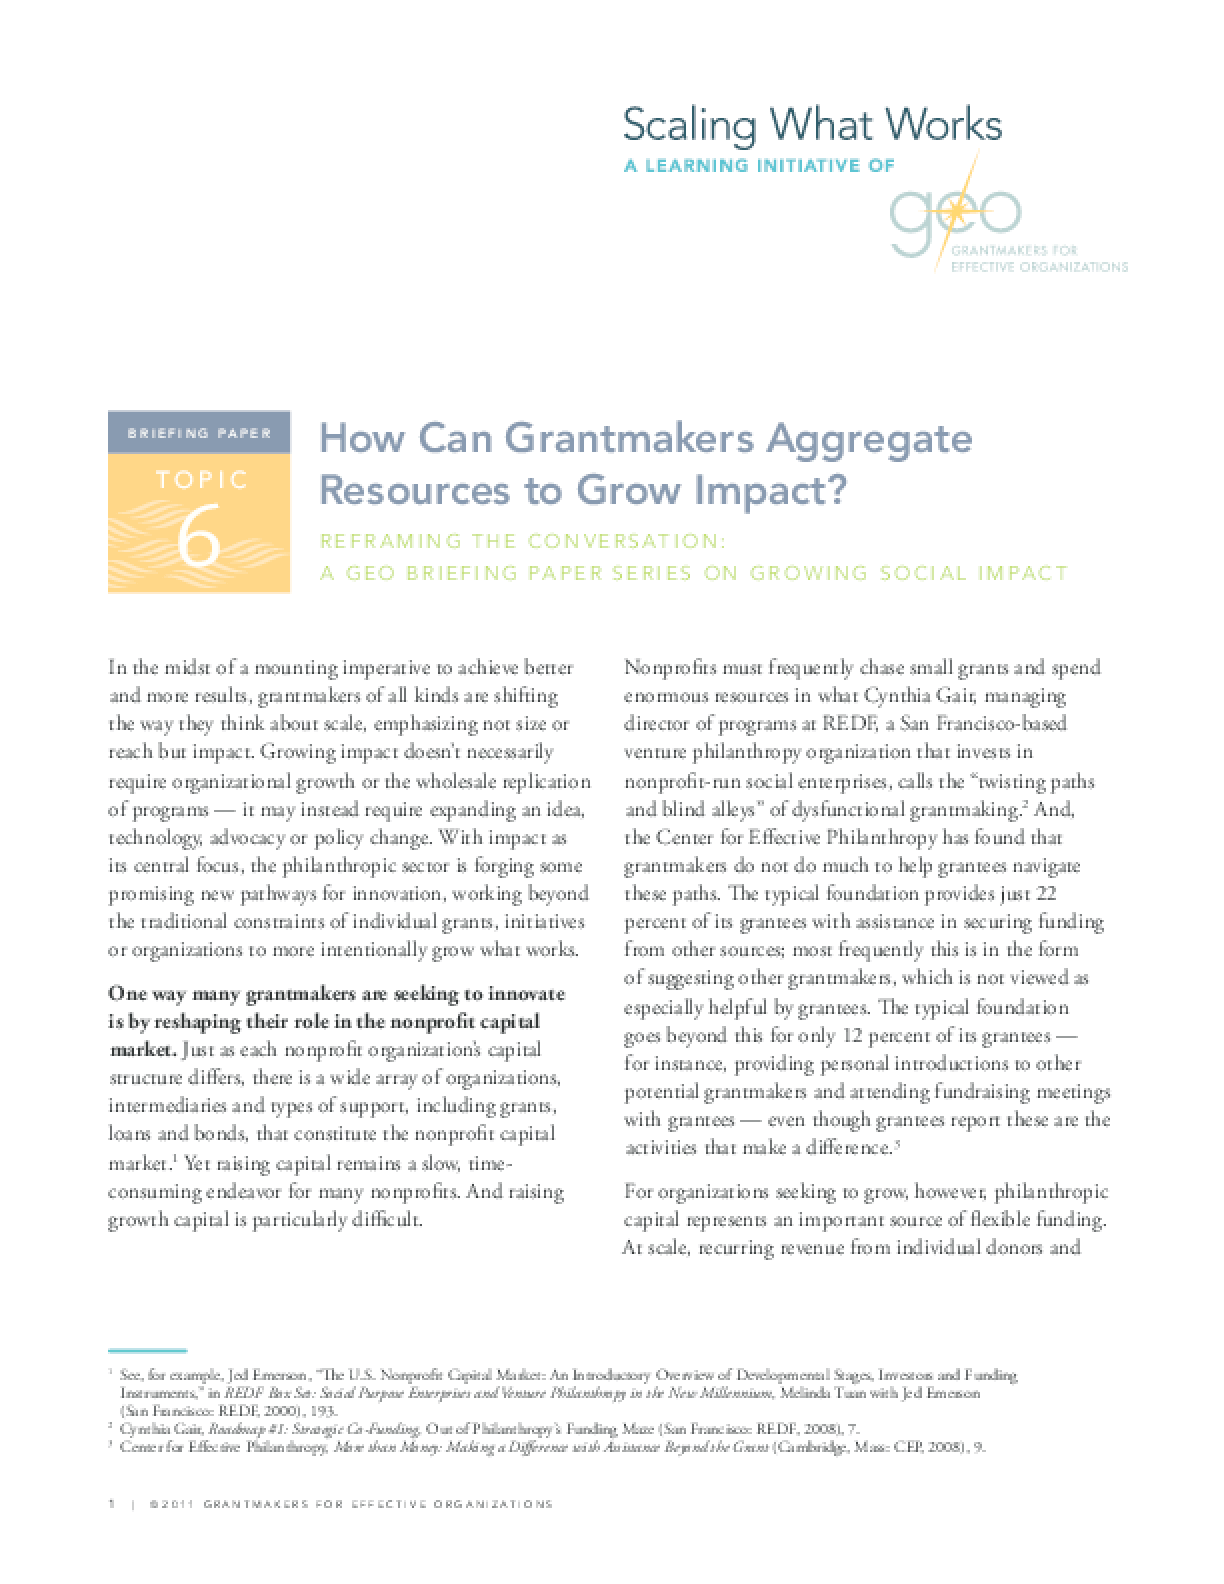 Reframing the Conversation: How Can Grantmakers Aggregate Resources